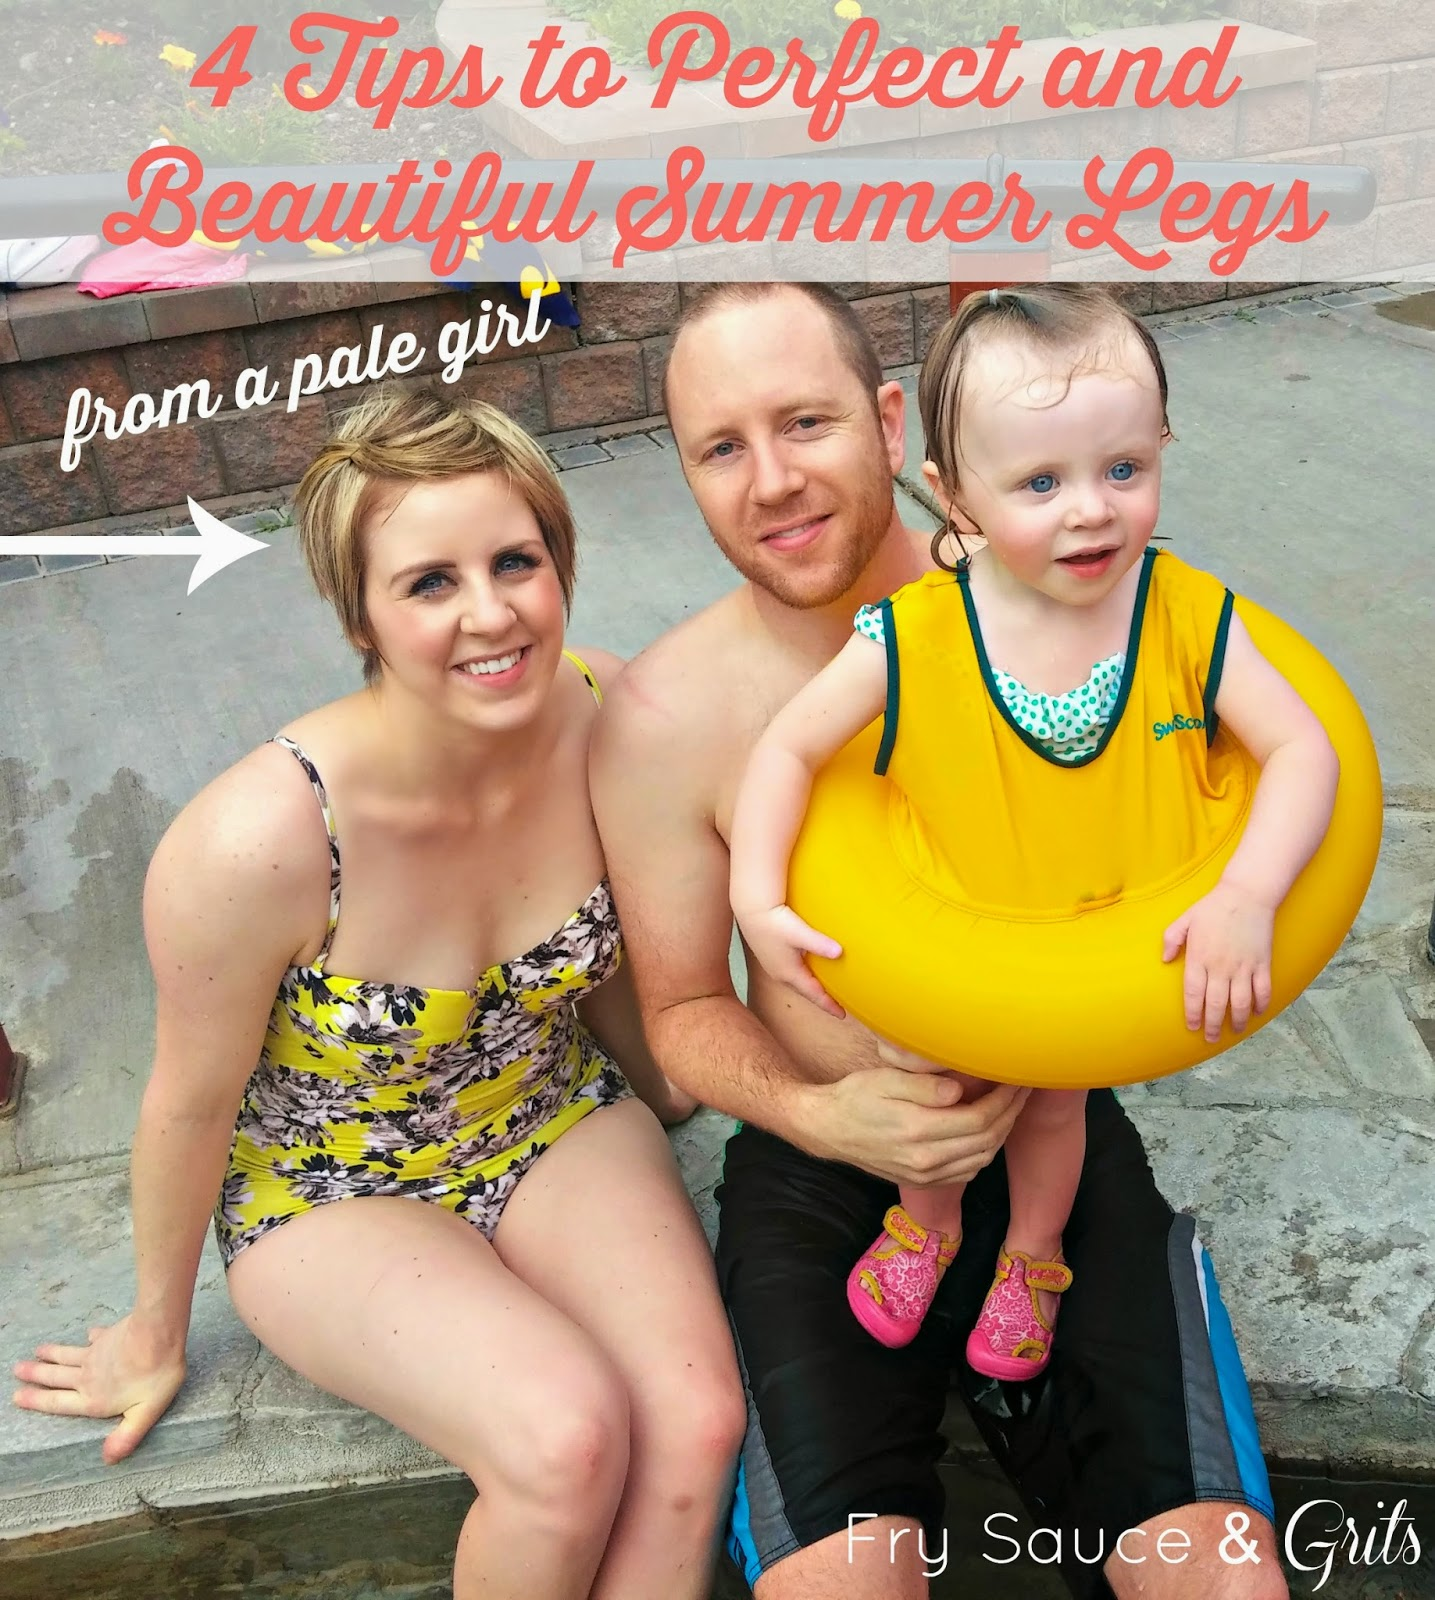 4 Tips to Perfect and Beautiful Summer Legs from a Pale Girl from FrySauceandGrits.com